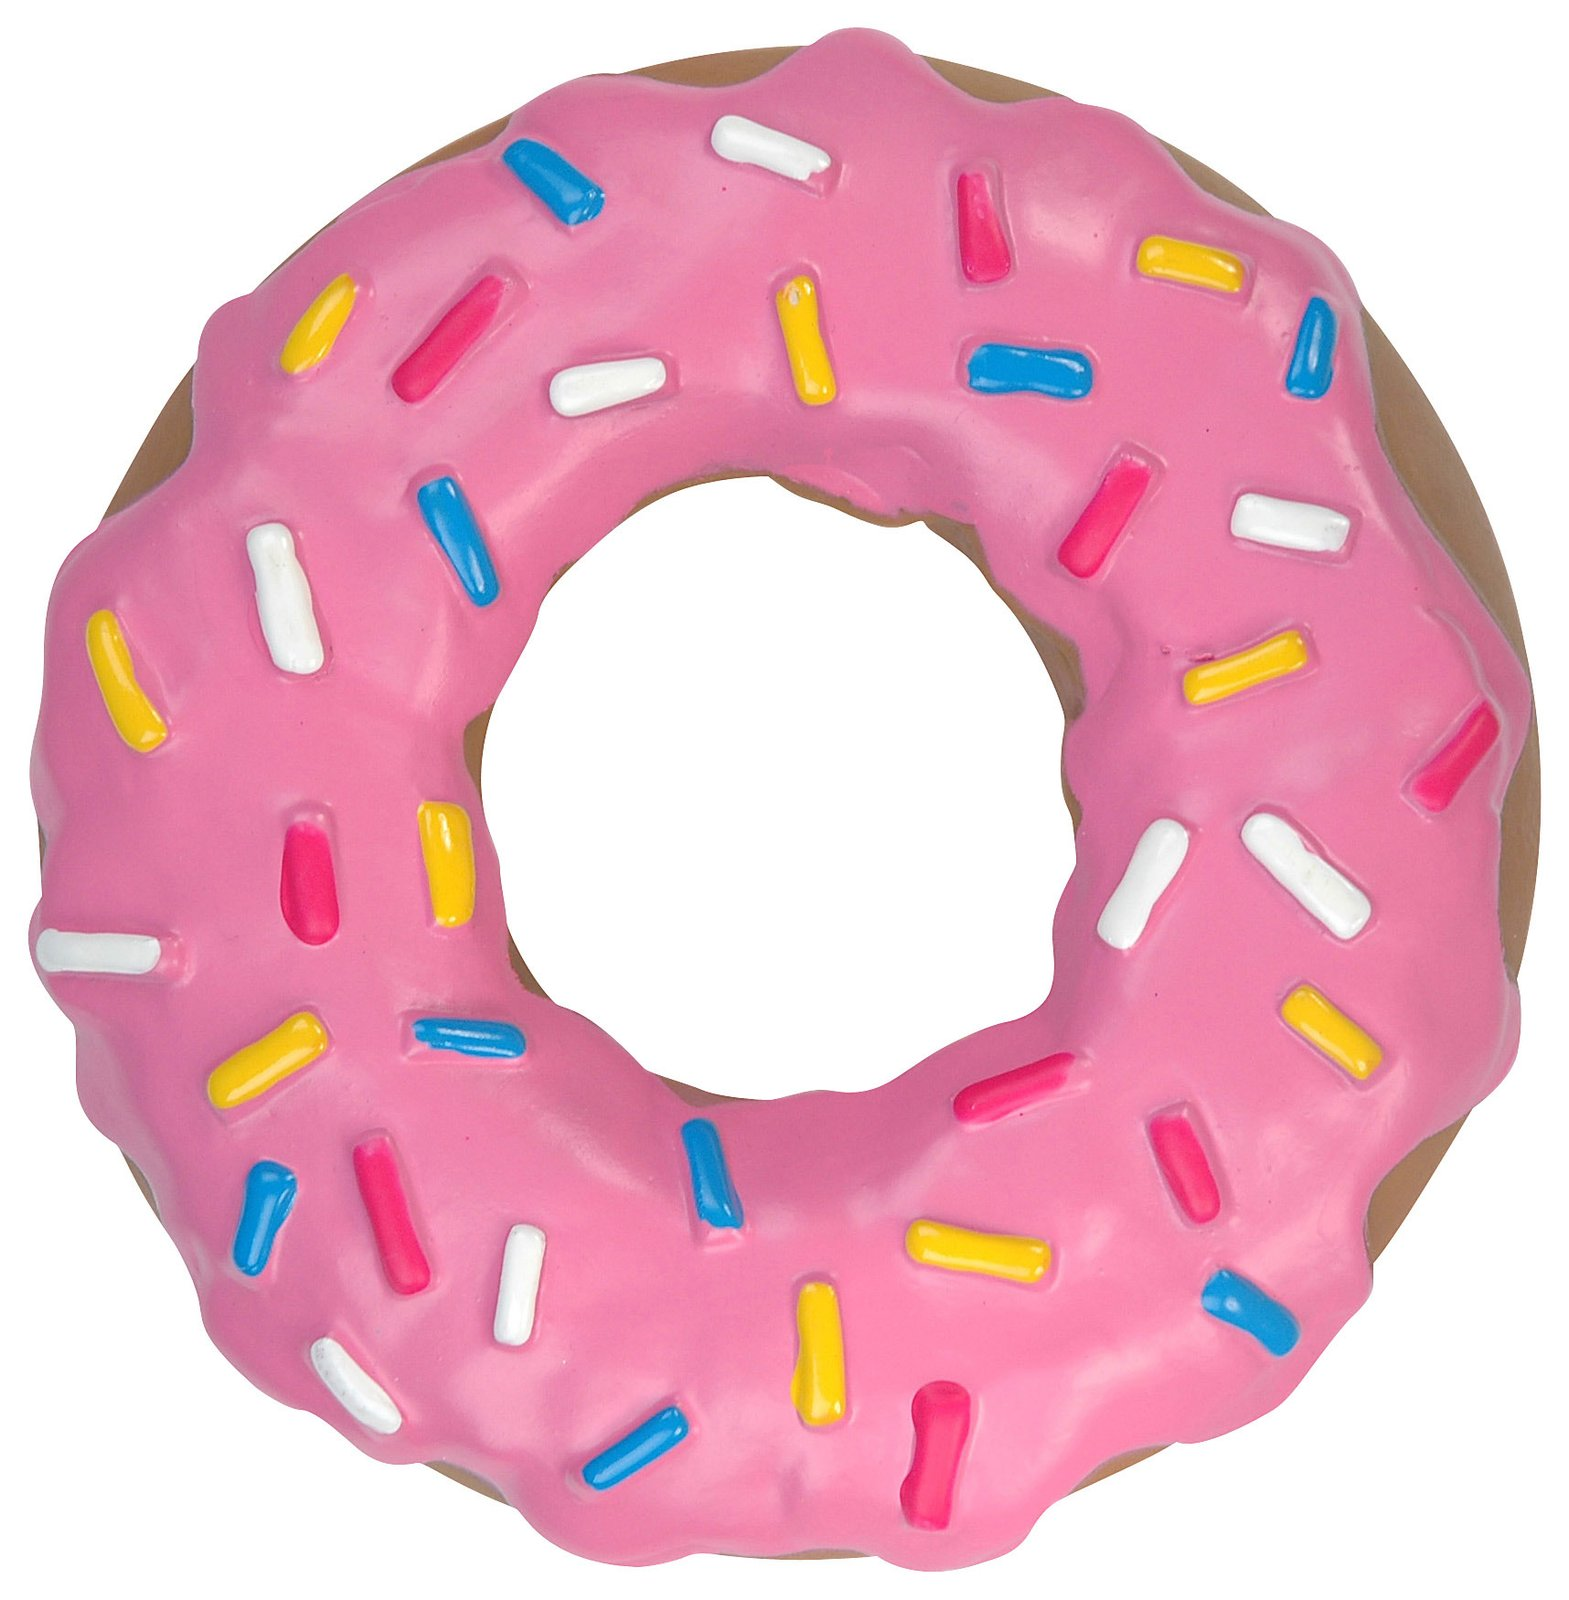 Clip Art Donut Clipart donut clipart kid you need to enable javascript